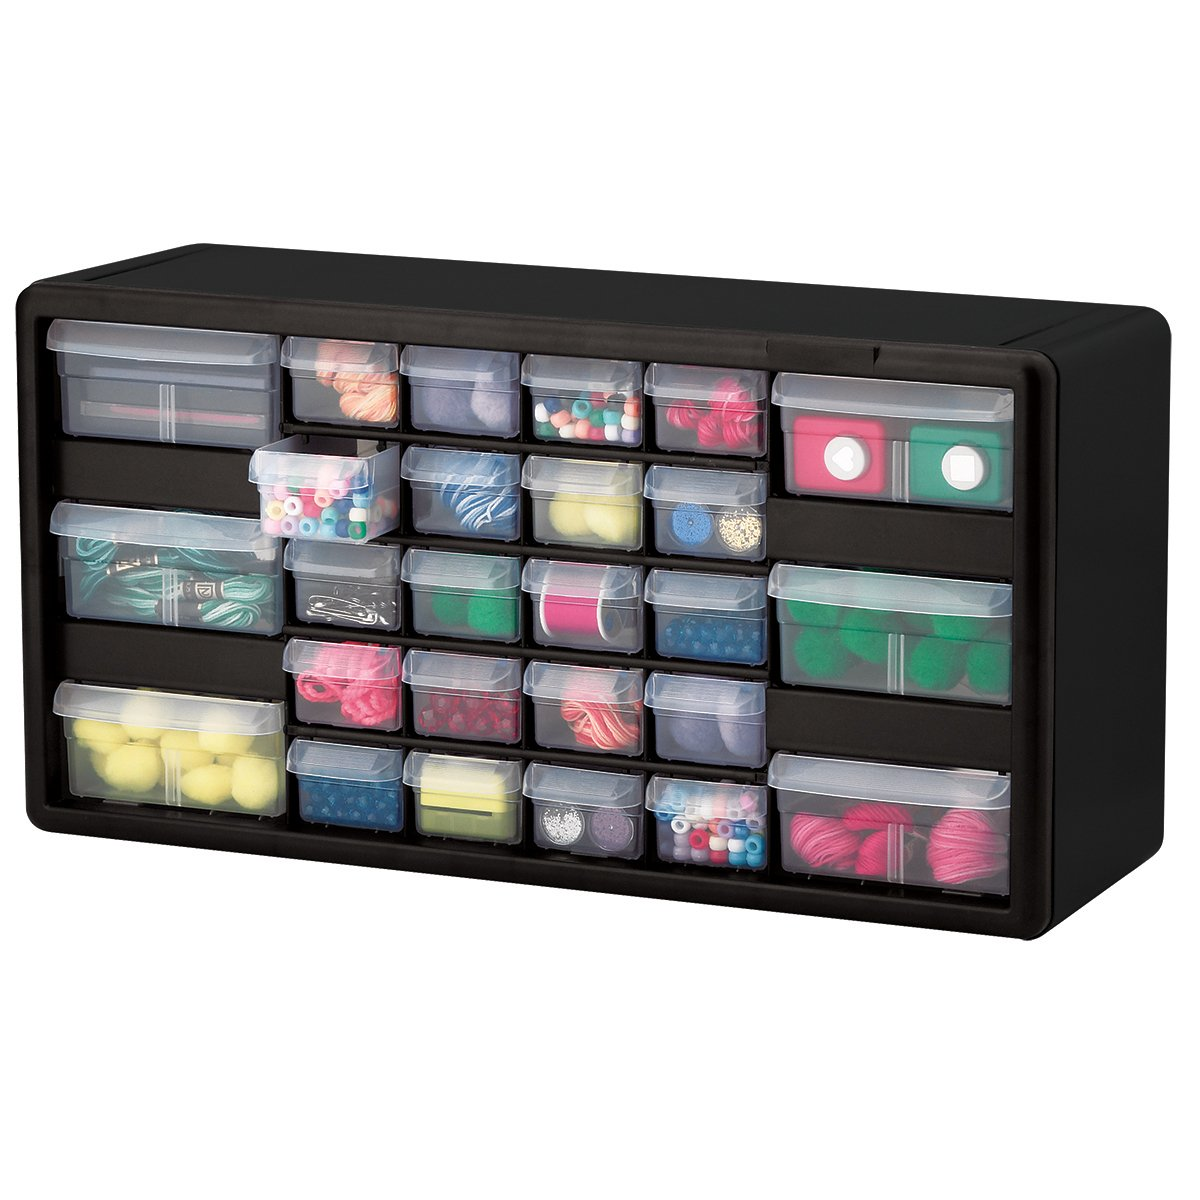 Craft storage drawers plastic - Amazon Com Akro Mils 10126 26 Drawer Plastic Parts Storage Hardware And Craft Cabinet 20 Inch By 10 1 4 Inch By 6 3 8 Inch Black Home Improvement